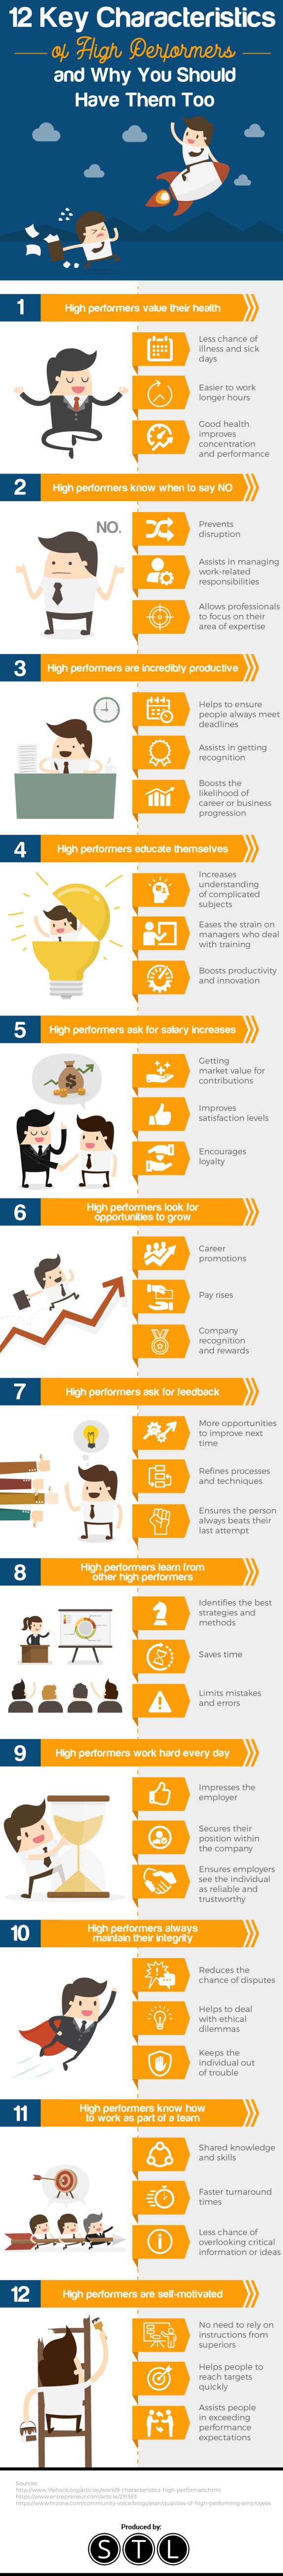 12 Key Characteristics of High Performers